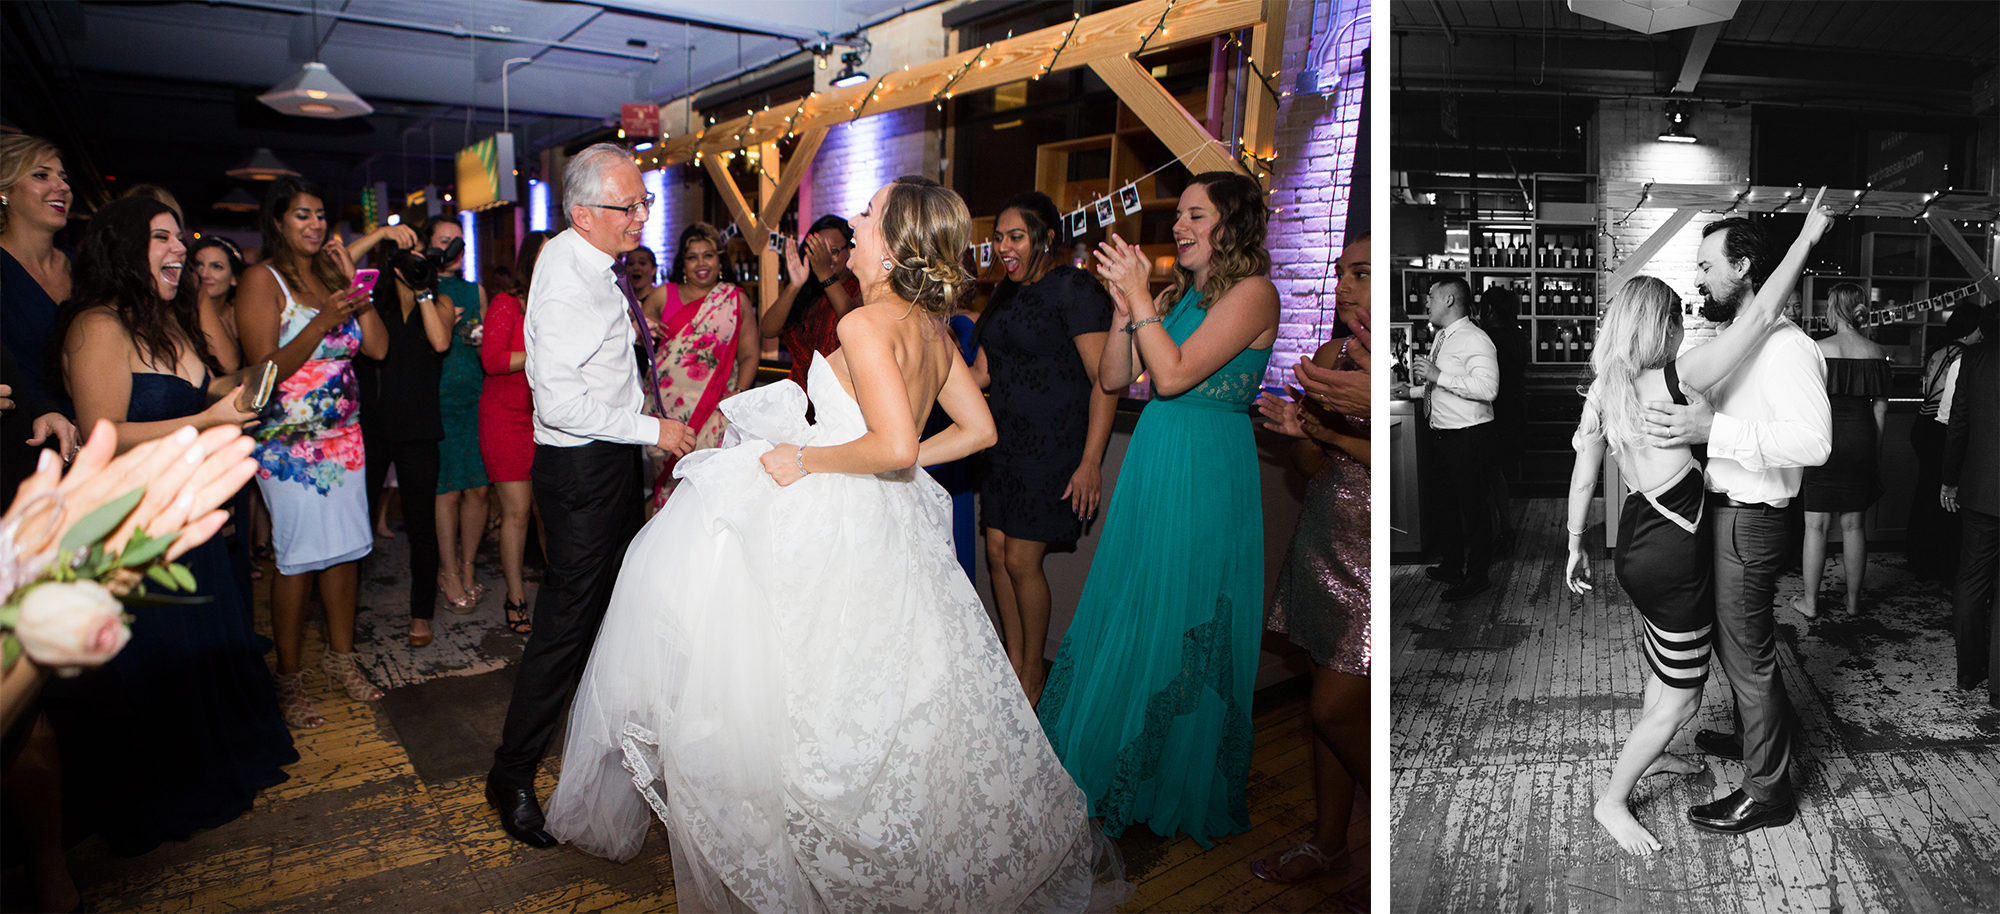 Party Dance Reception Zsuzsi Pal Photography Toronto Wedding 2nd Second Floor Events